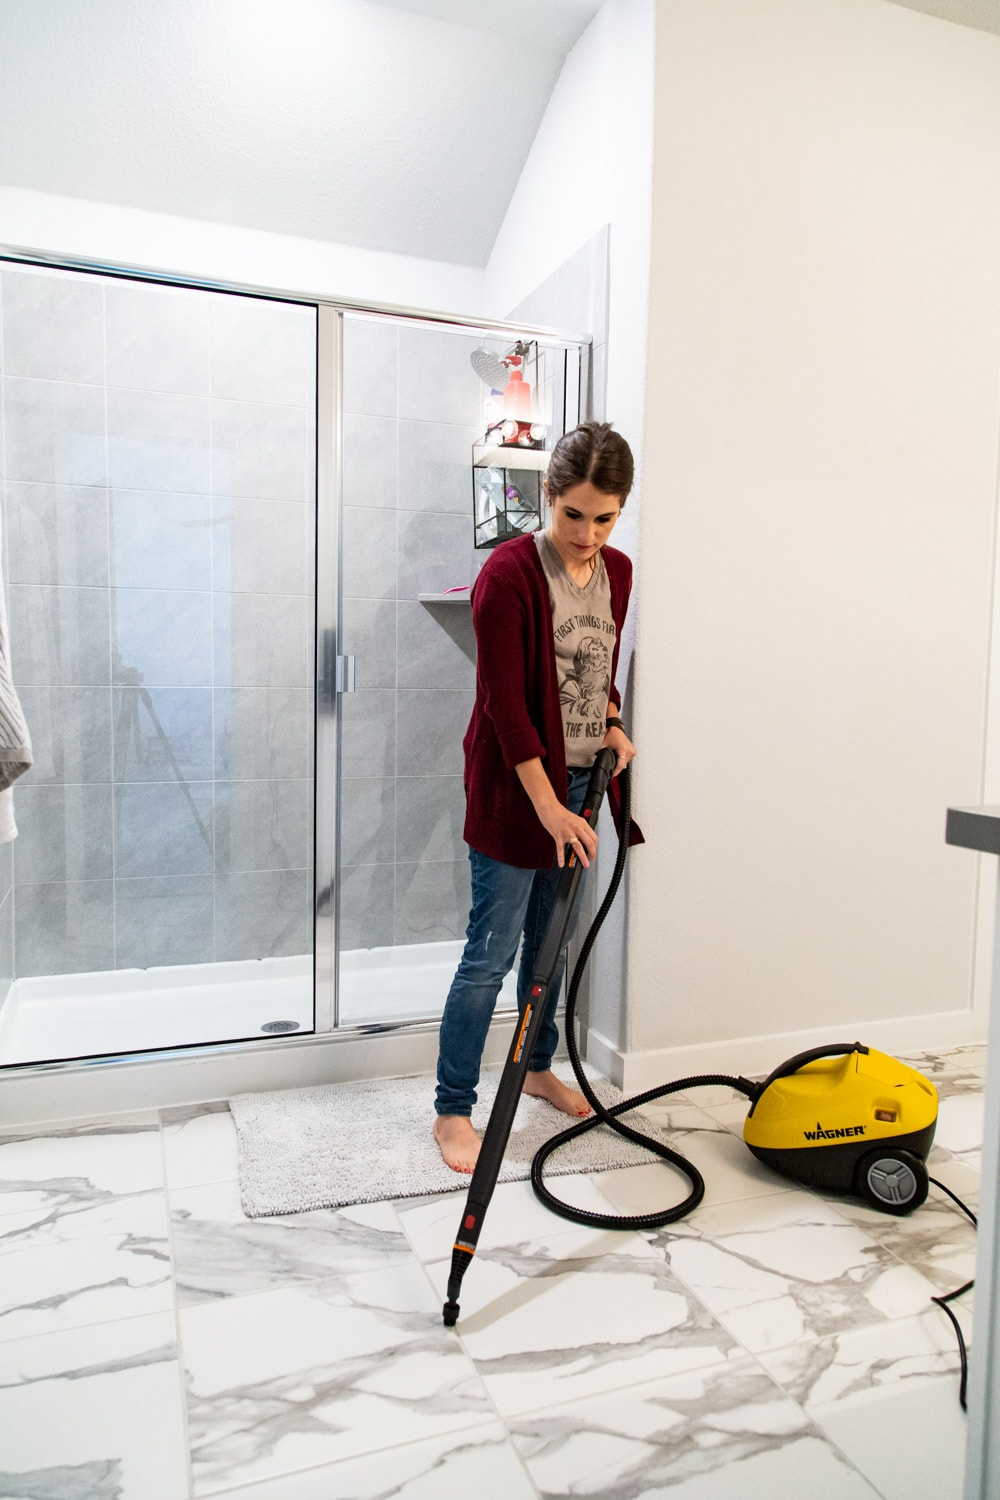 woman cleaning a bathroom floor using a steamer